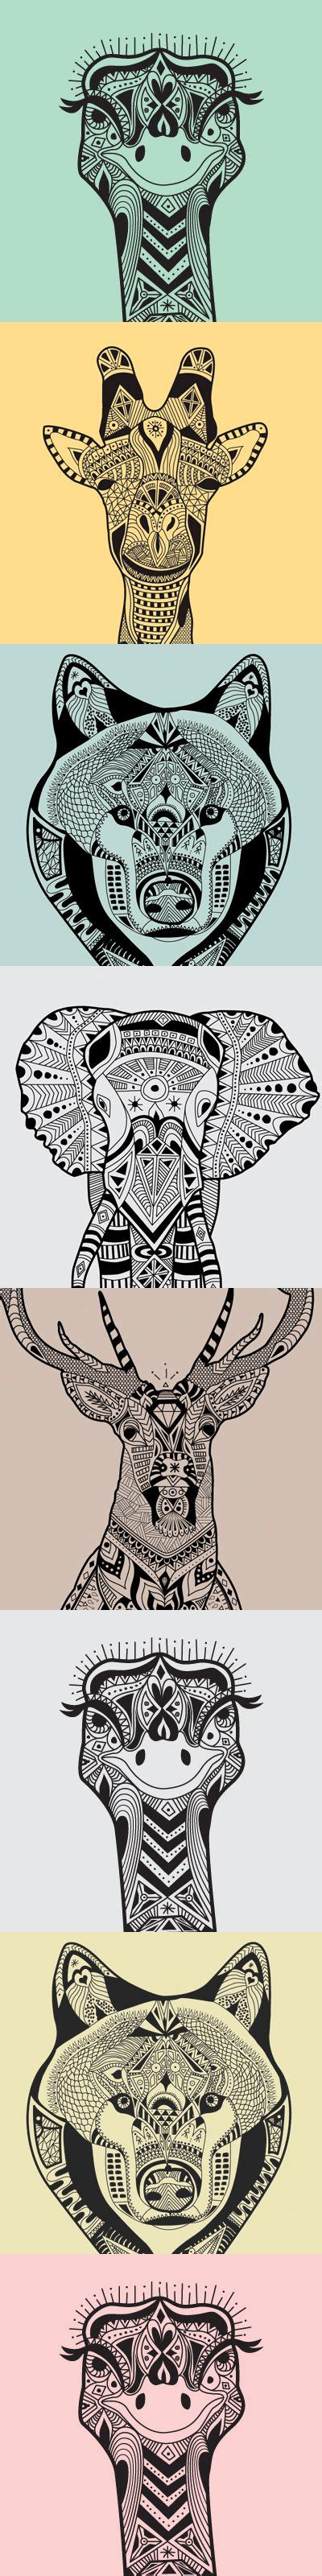 doodle pattern animals wild animals zentangle patterns zentangle more doodle